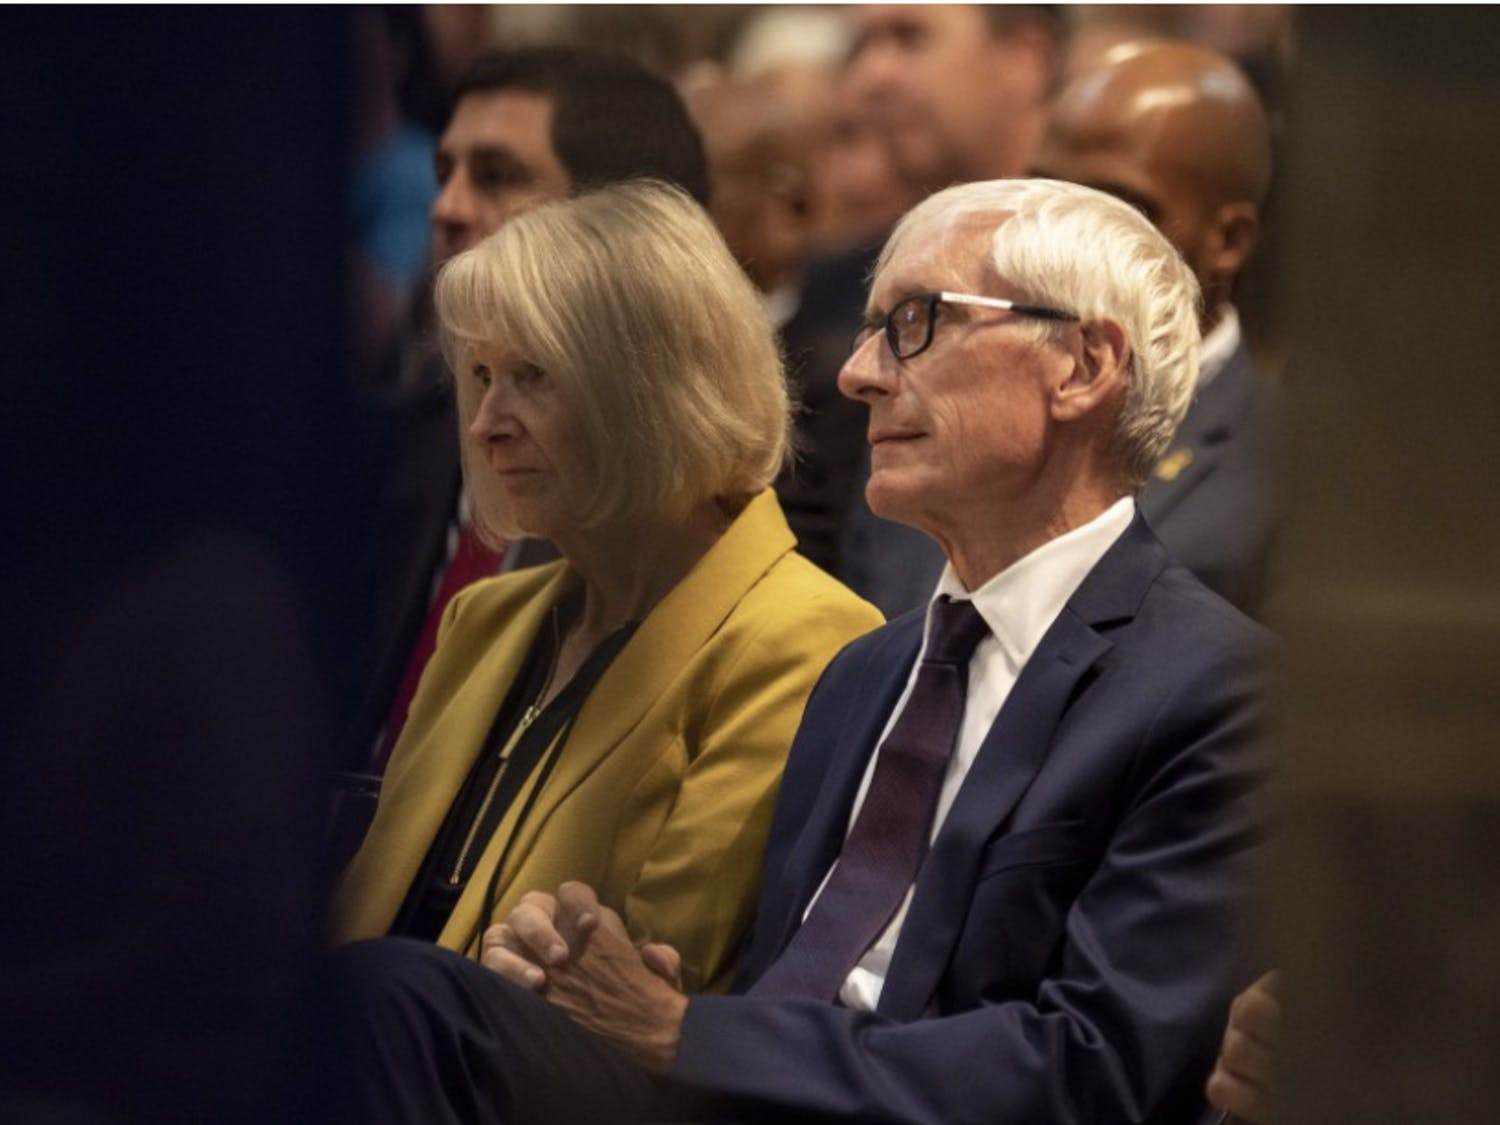 Gov. Tony Evers proclaims November Family Caregiver month brings awareness to demands of the role, paralleling U.S. Sen. Tammy Baldwin, D-Wis, proposed legislation promoting respite care.